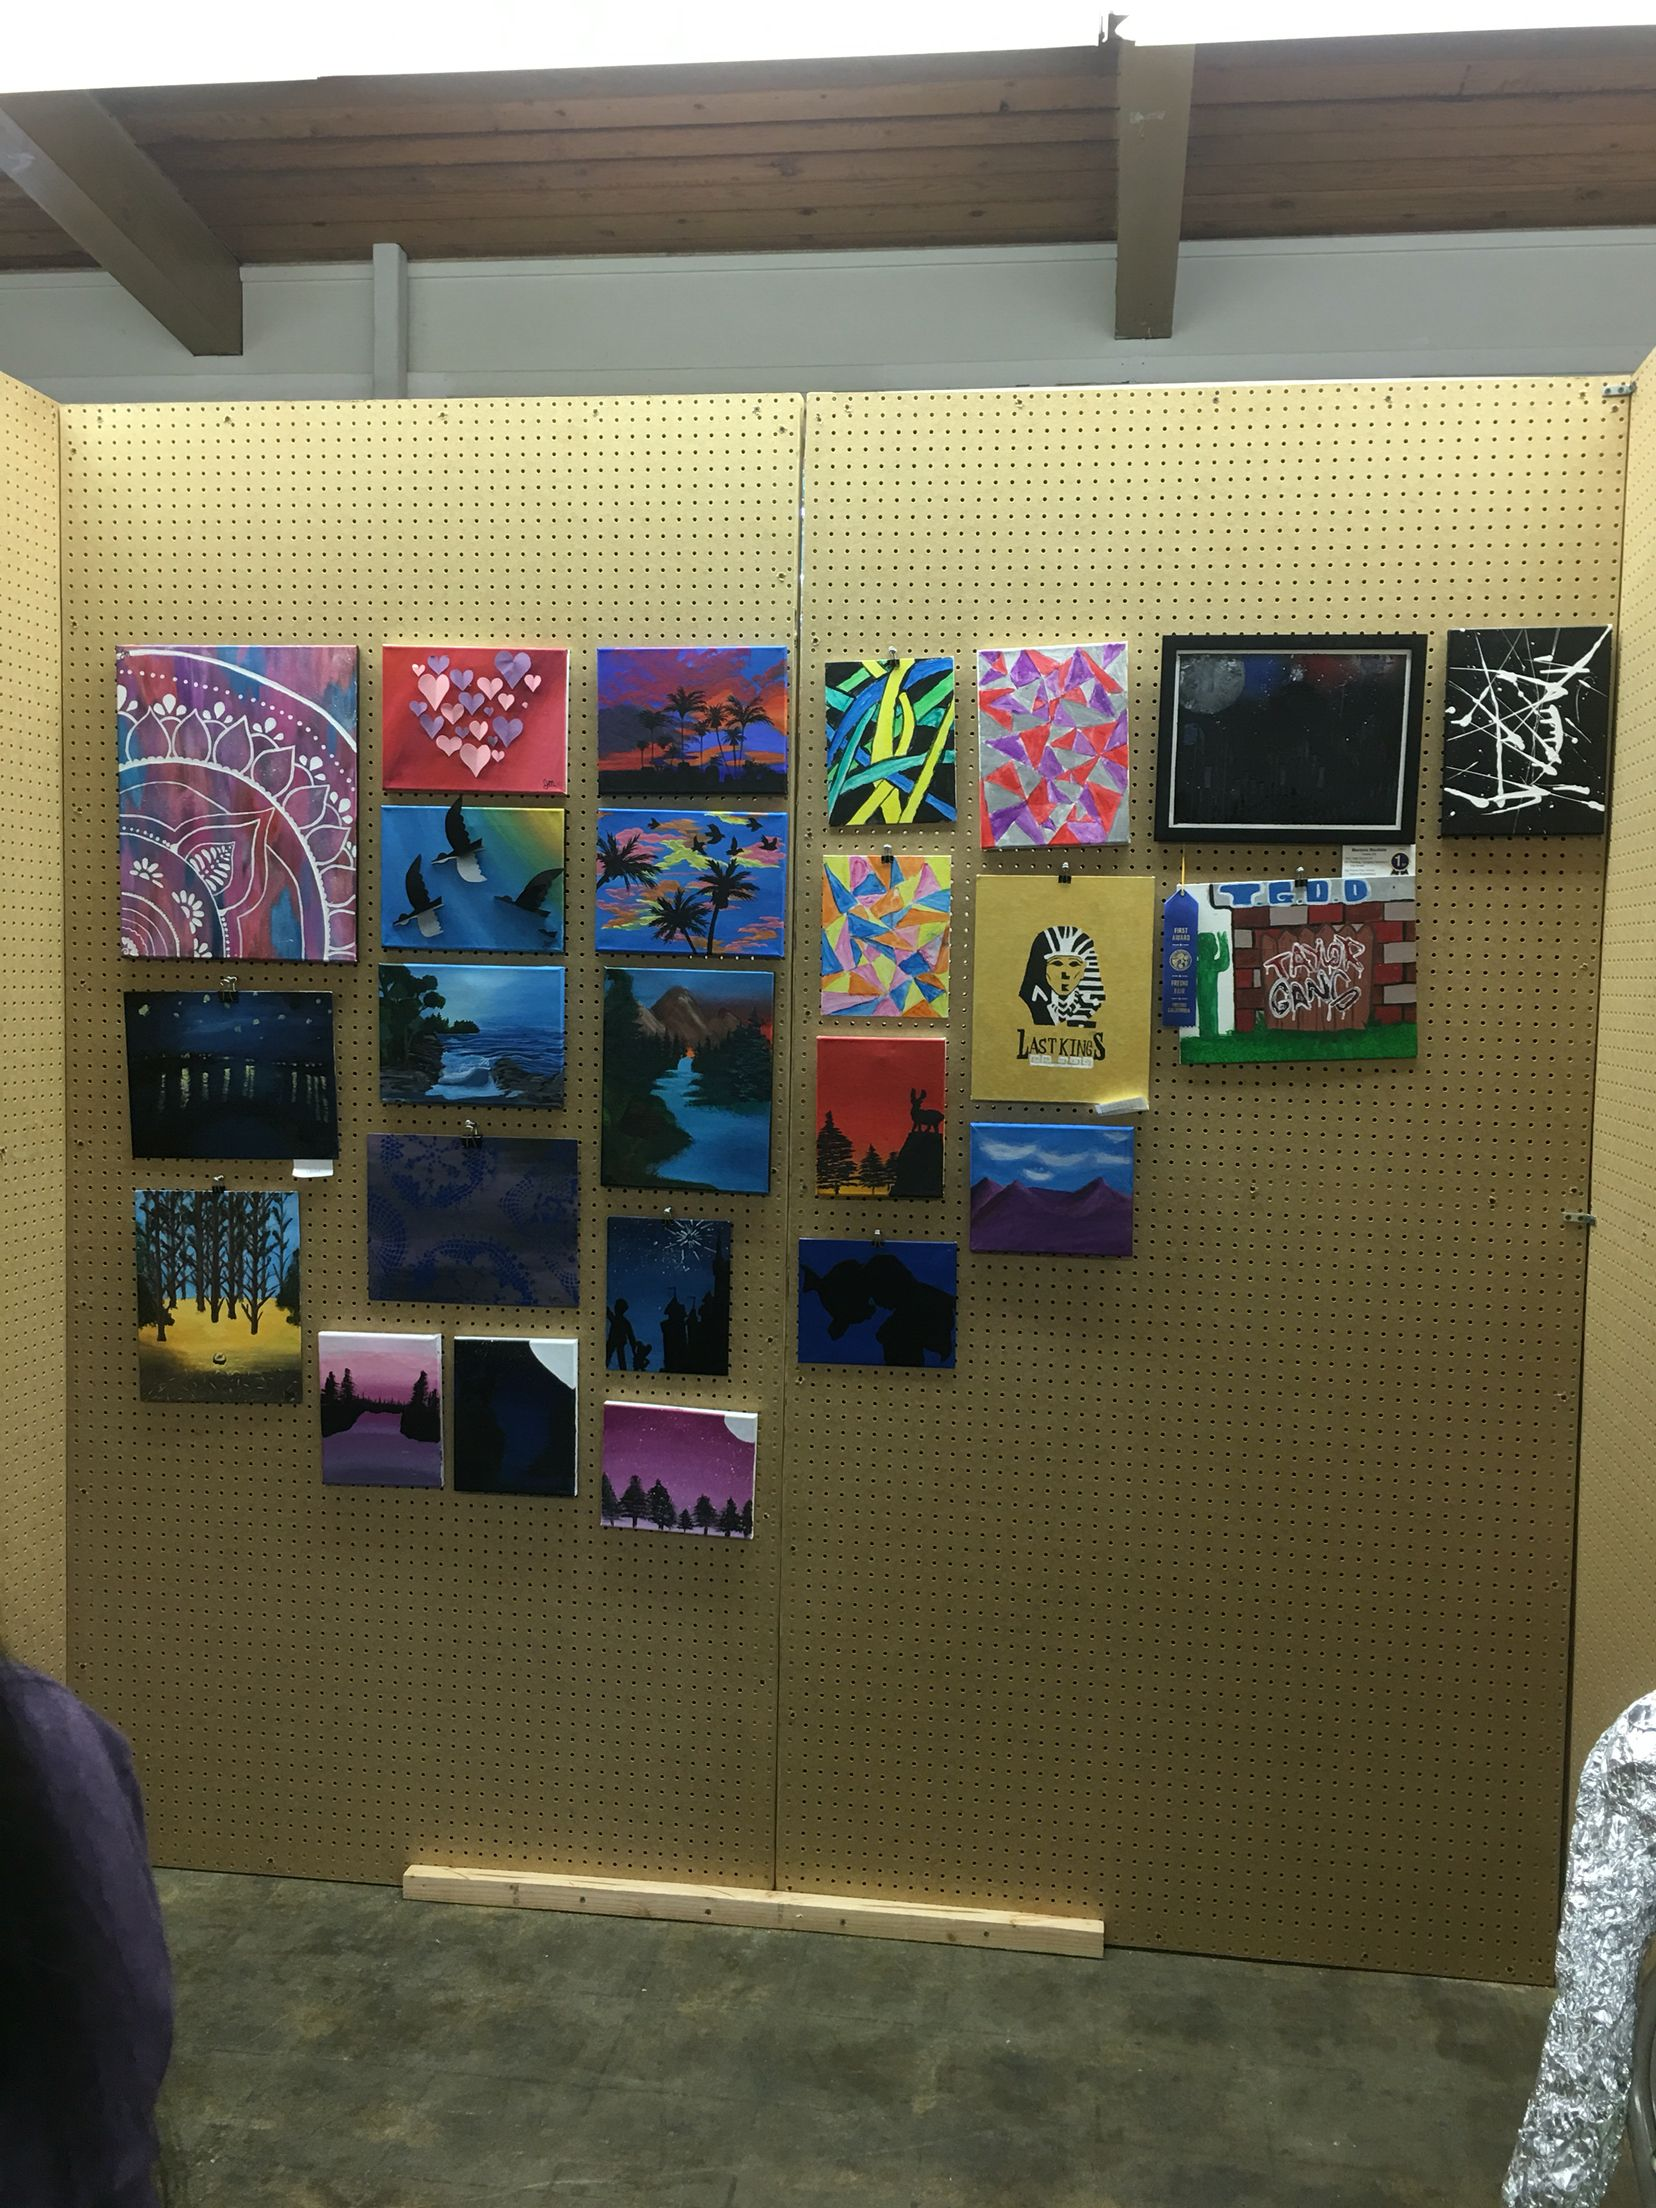 Our monthly ArtHop allows students to exhibit their work